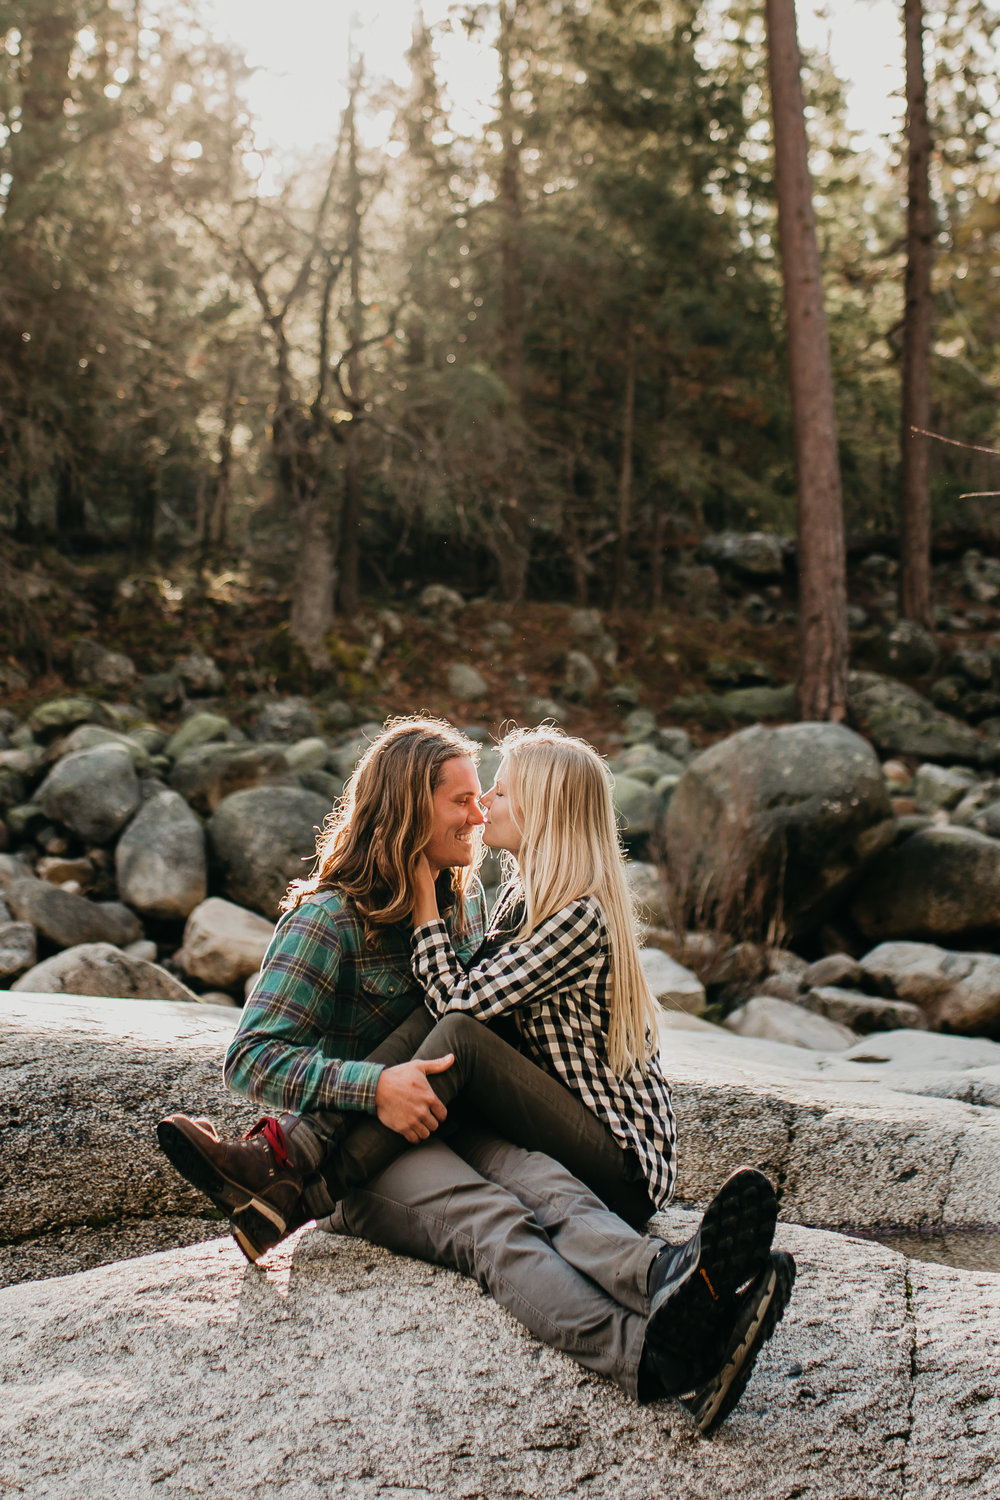 nicole-daacke-photography-yosemite-riverside-adventurous-engagement-photos-in-yosemite-national-park-elopement-photographer-weddings-travel-destination-wedding-eloping-elope-pine-forest-31.jpg